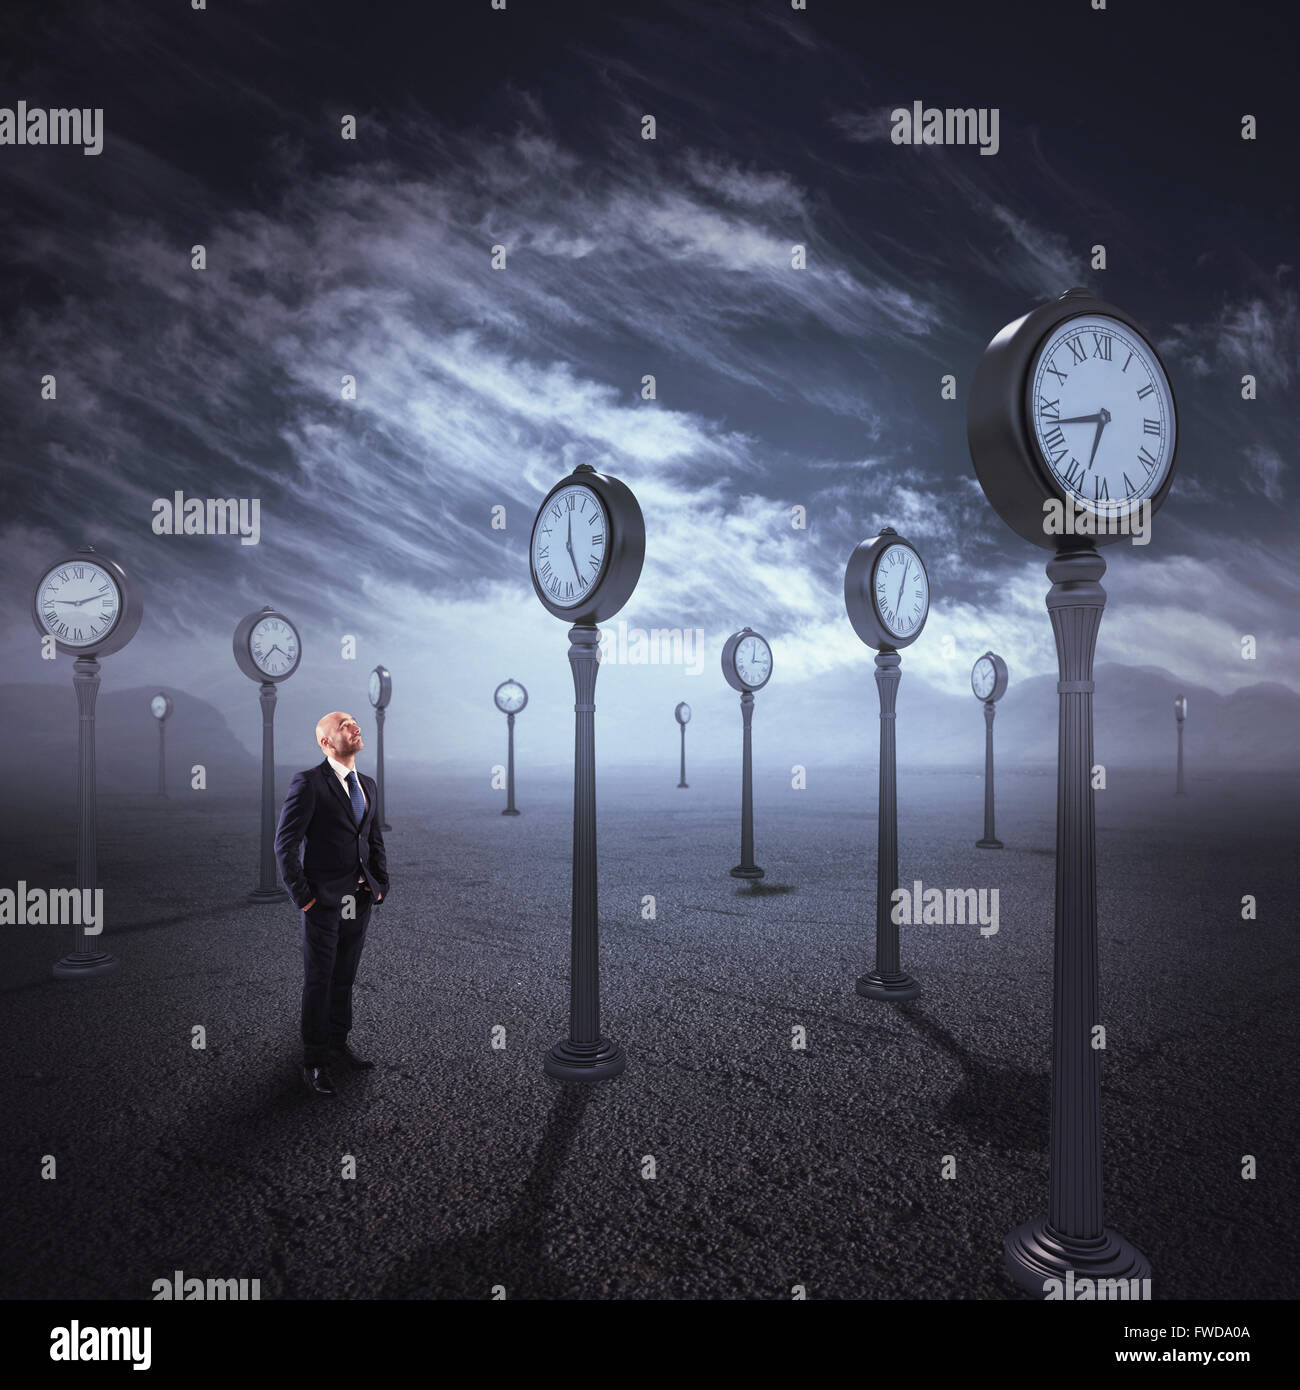 Observe the passage of time - Stock Image